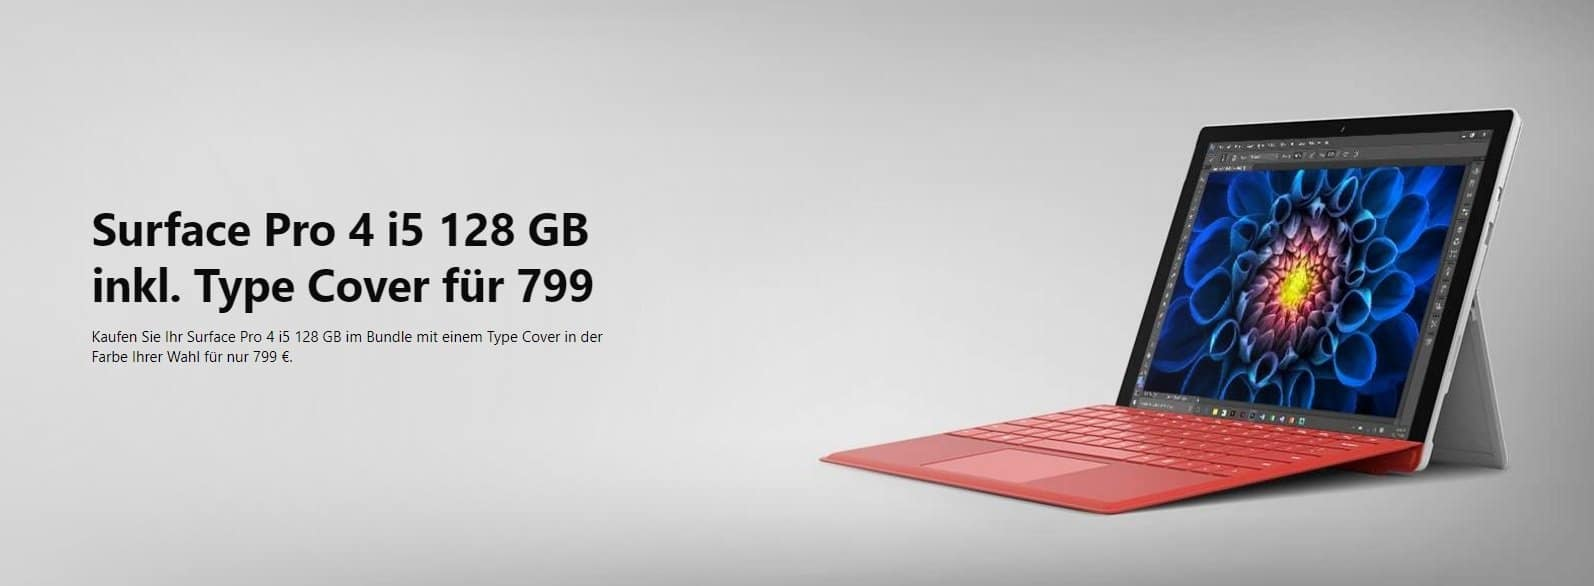 Surface Pro 4 i5 128 GB inklusive Type Cover für 799 Euro